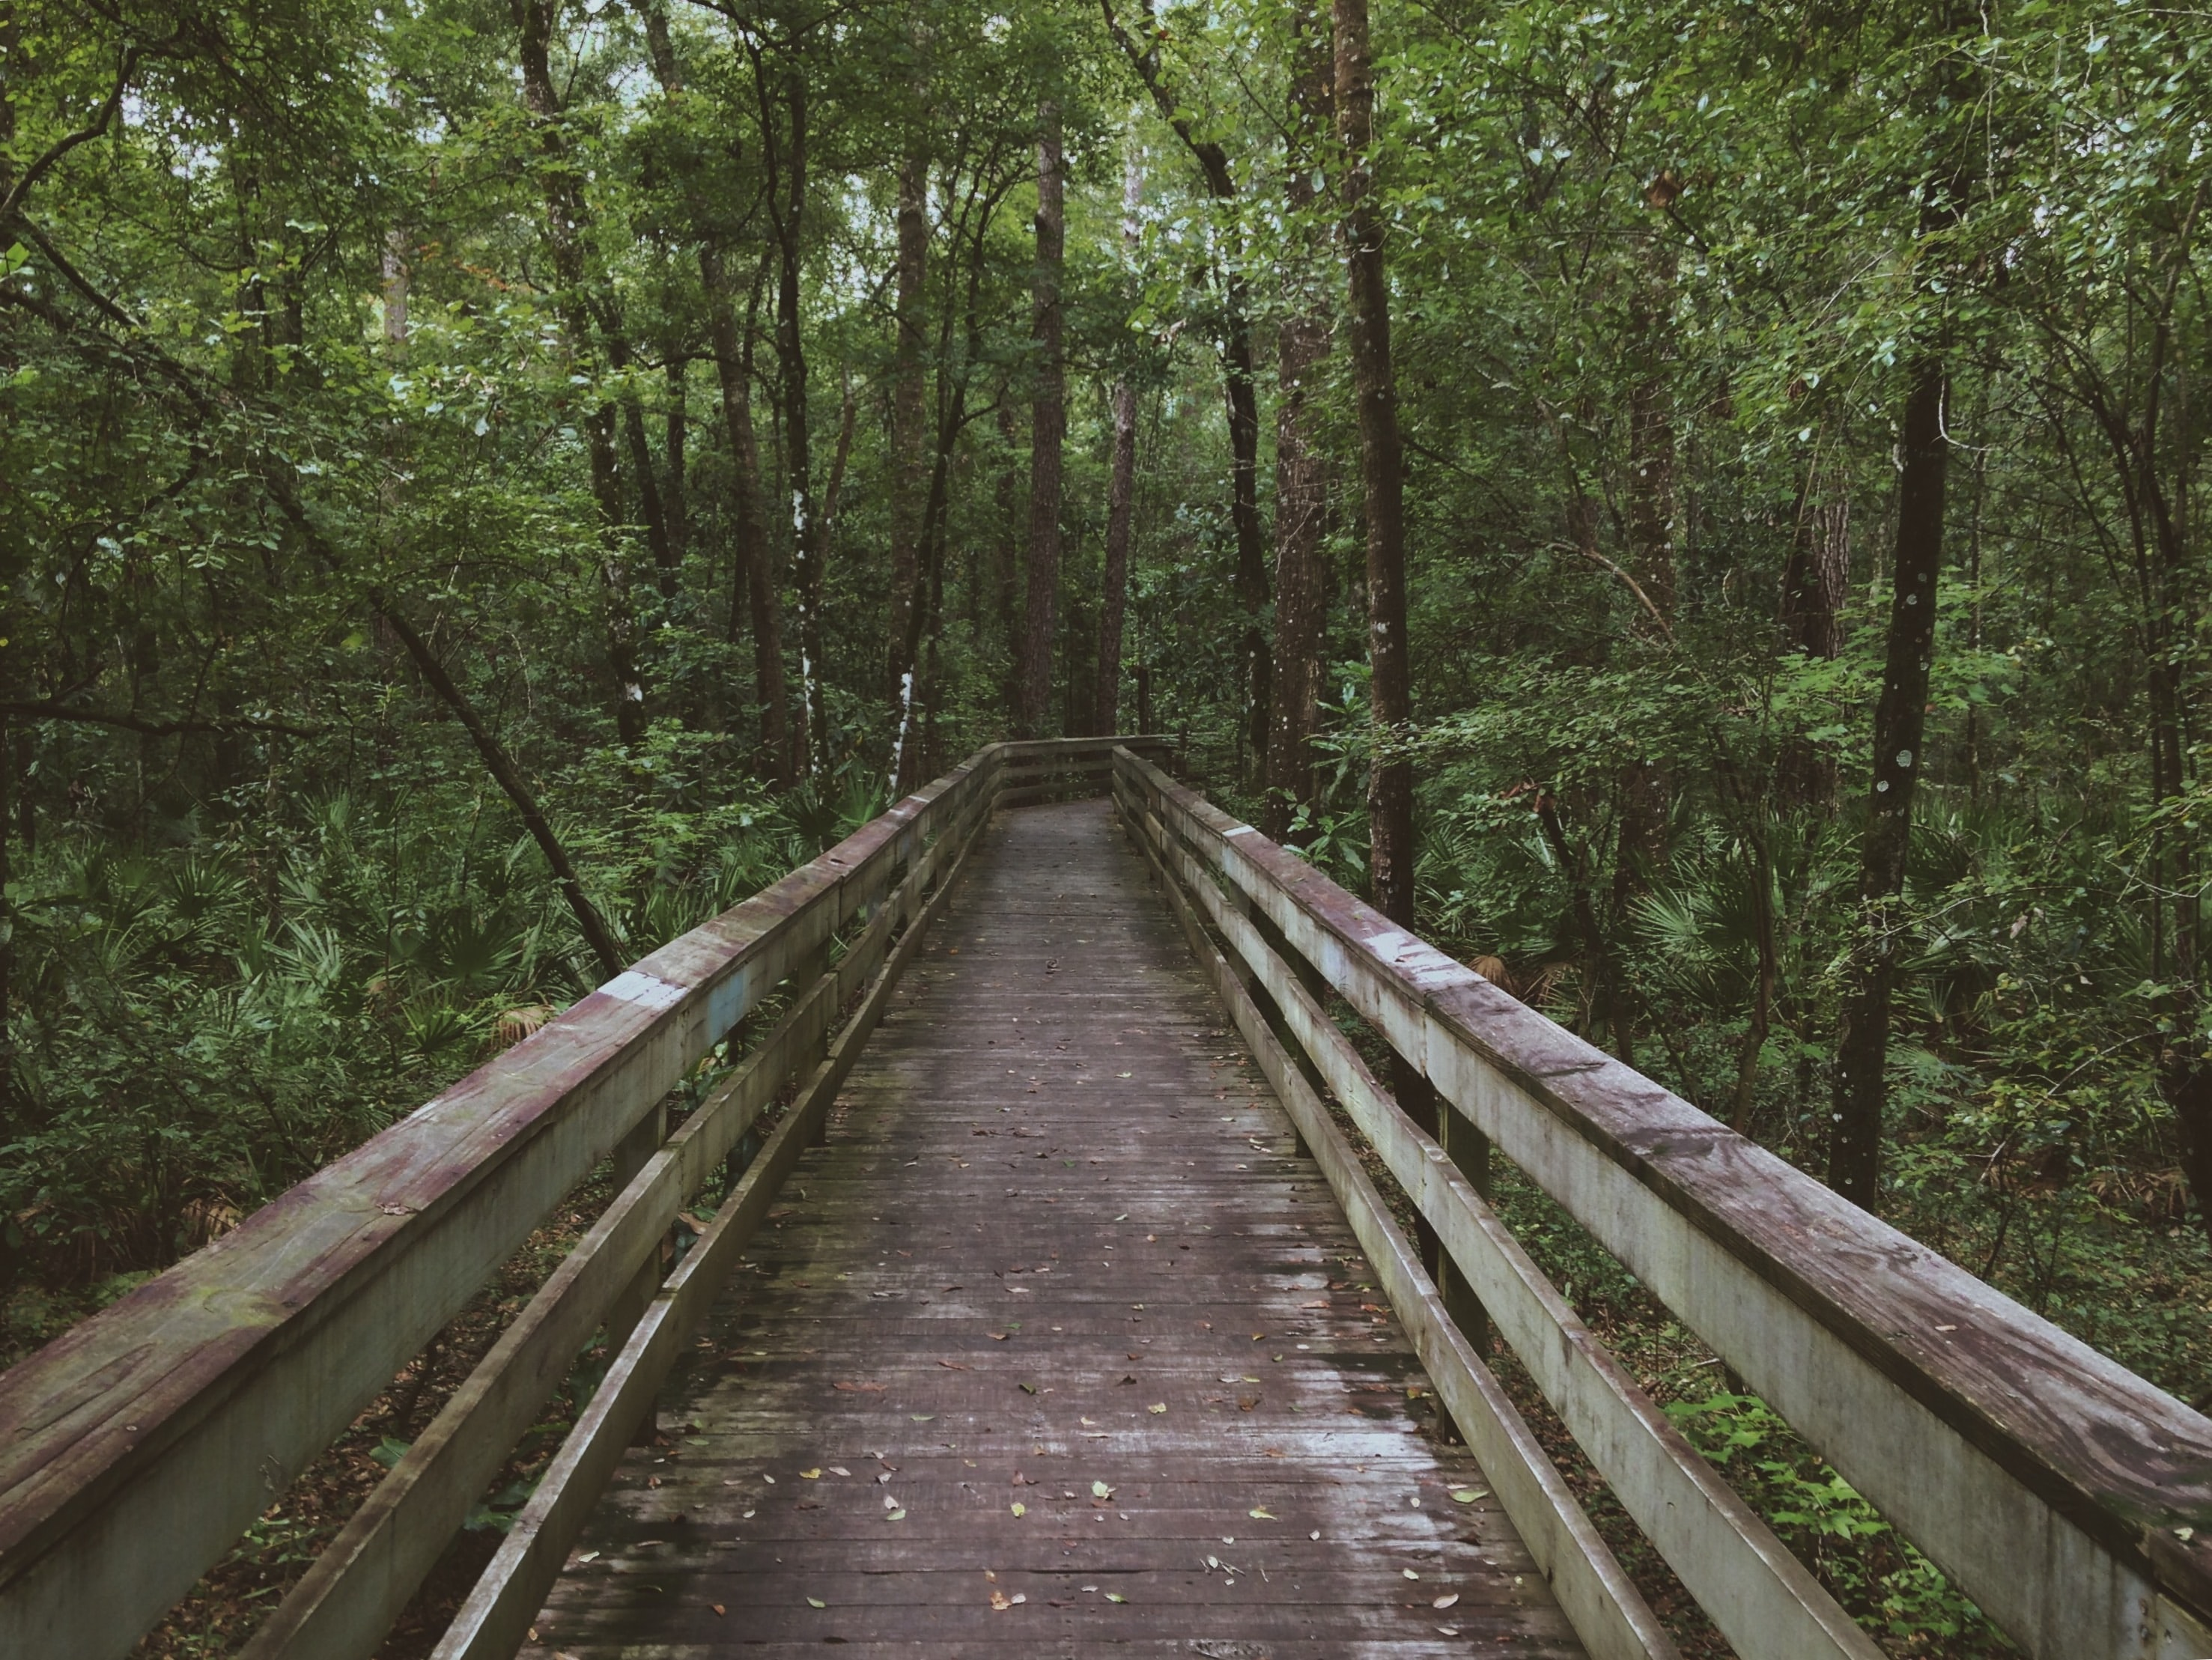 A dilapidated boardwalk in a forest